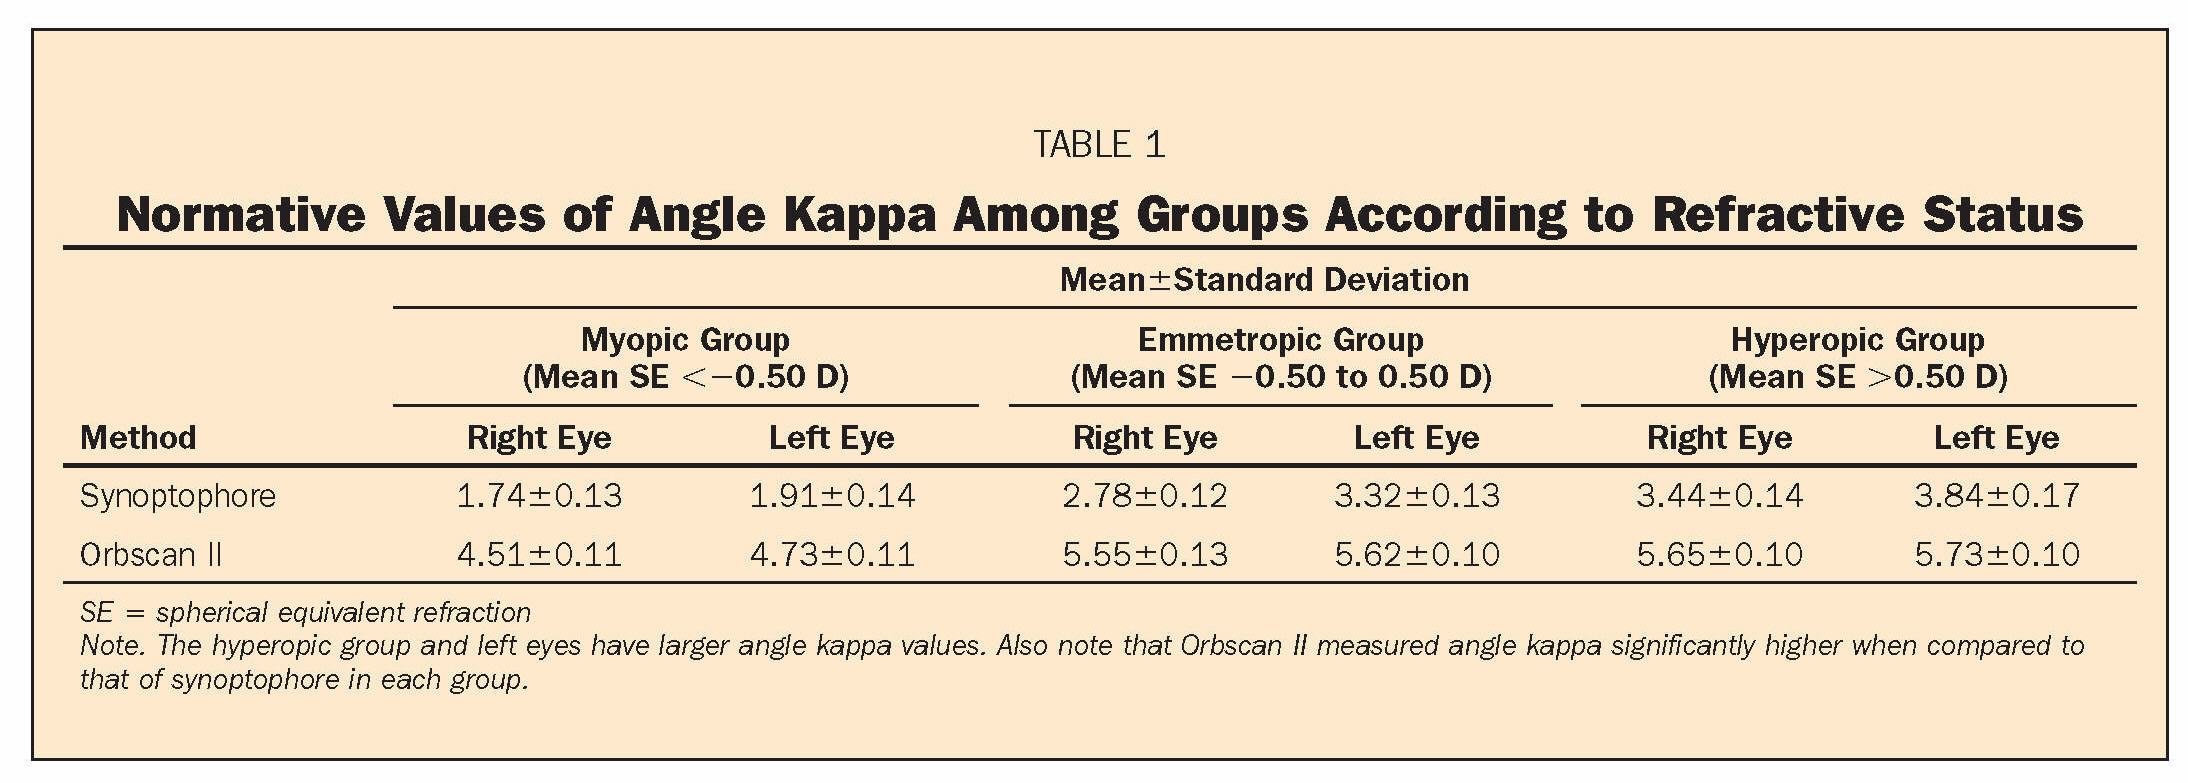 TABLE 1Normative Values of Angle Kappa Among Groups According to Refractive Status